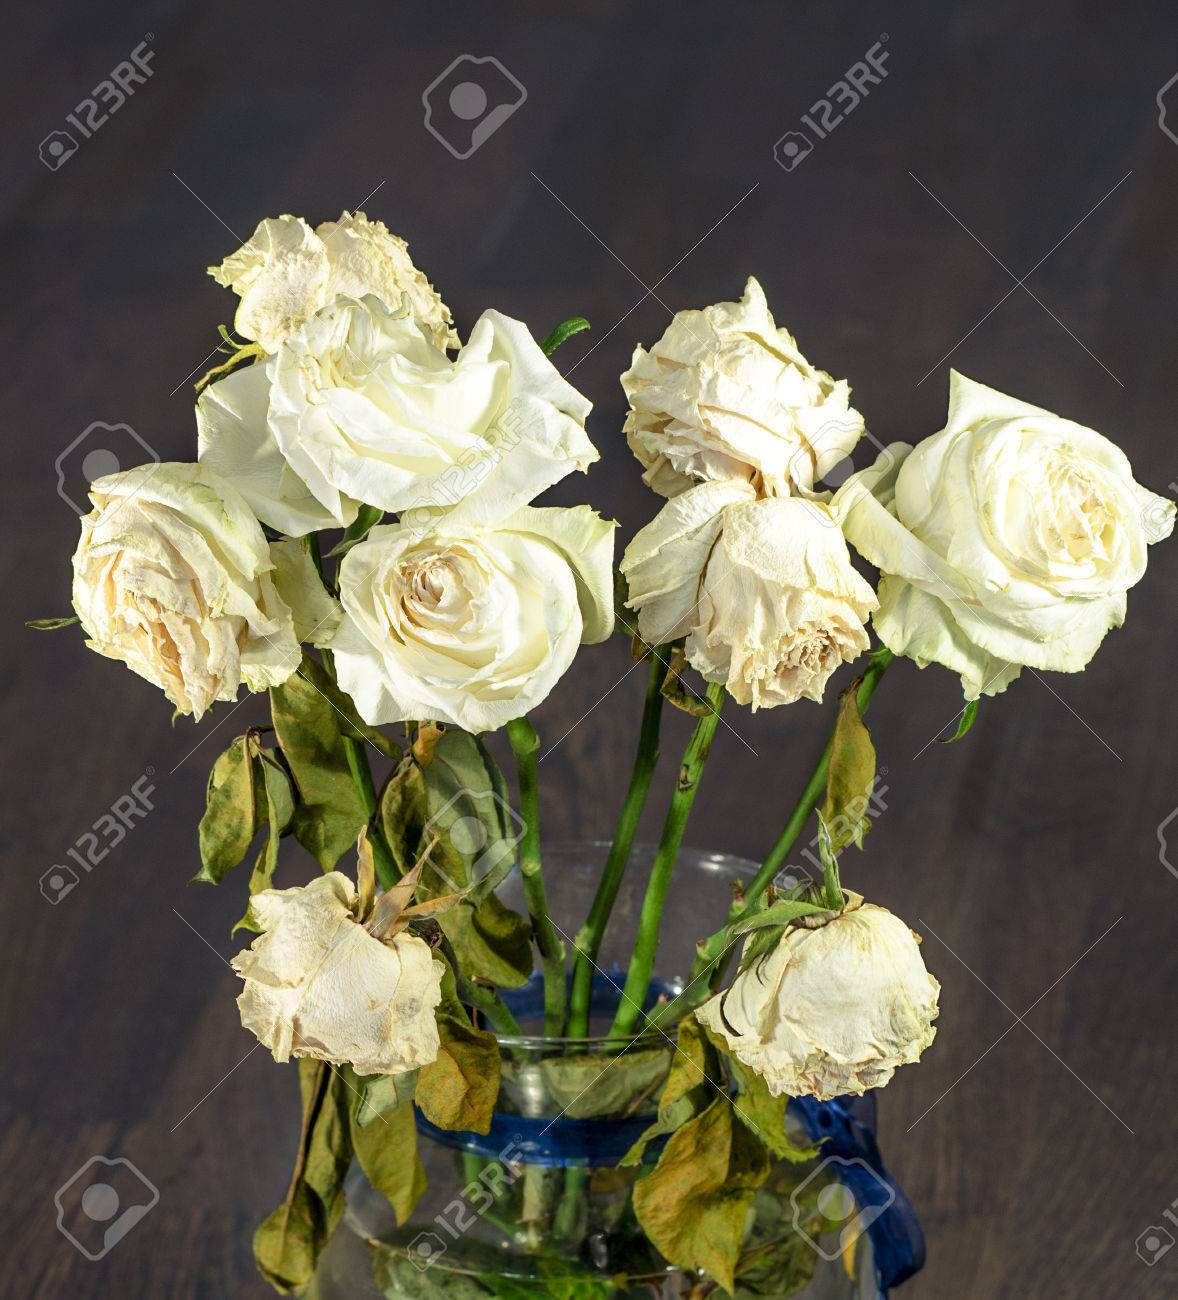 A Bouquet Of Dried Dying White Roses On A Black Background Stock